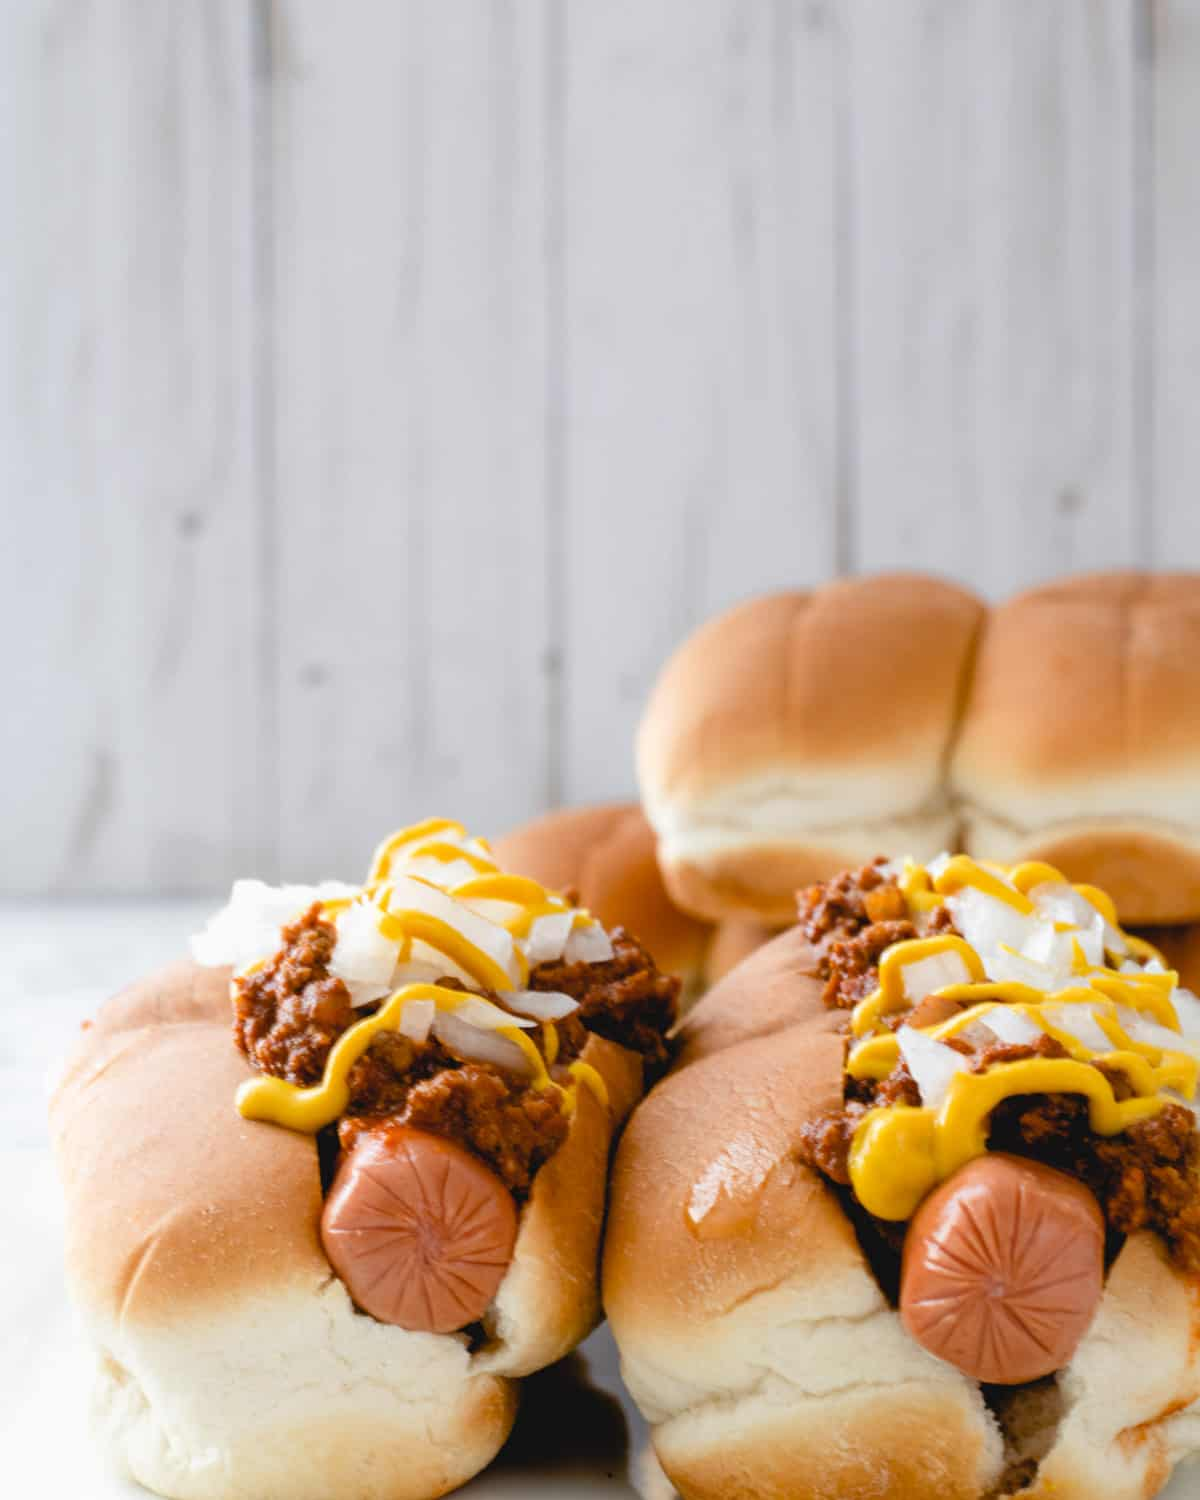 Two coney dogs with a pile of buns behind them.